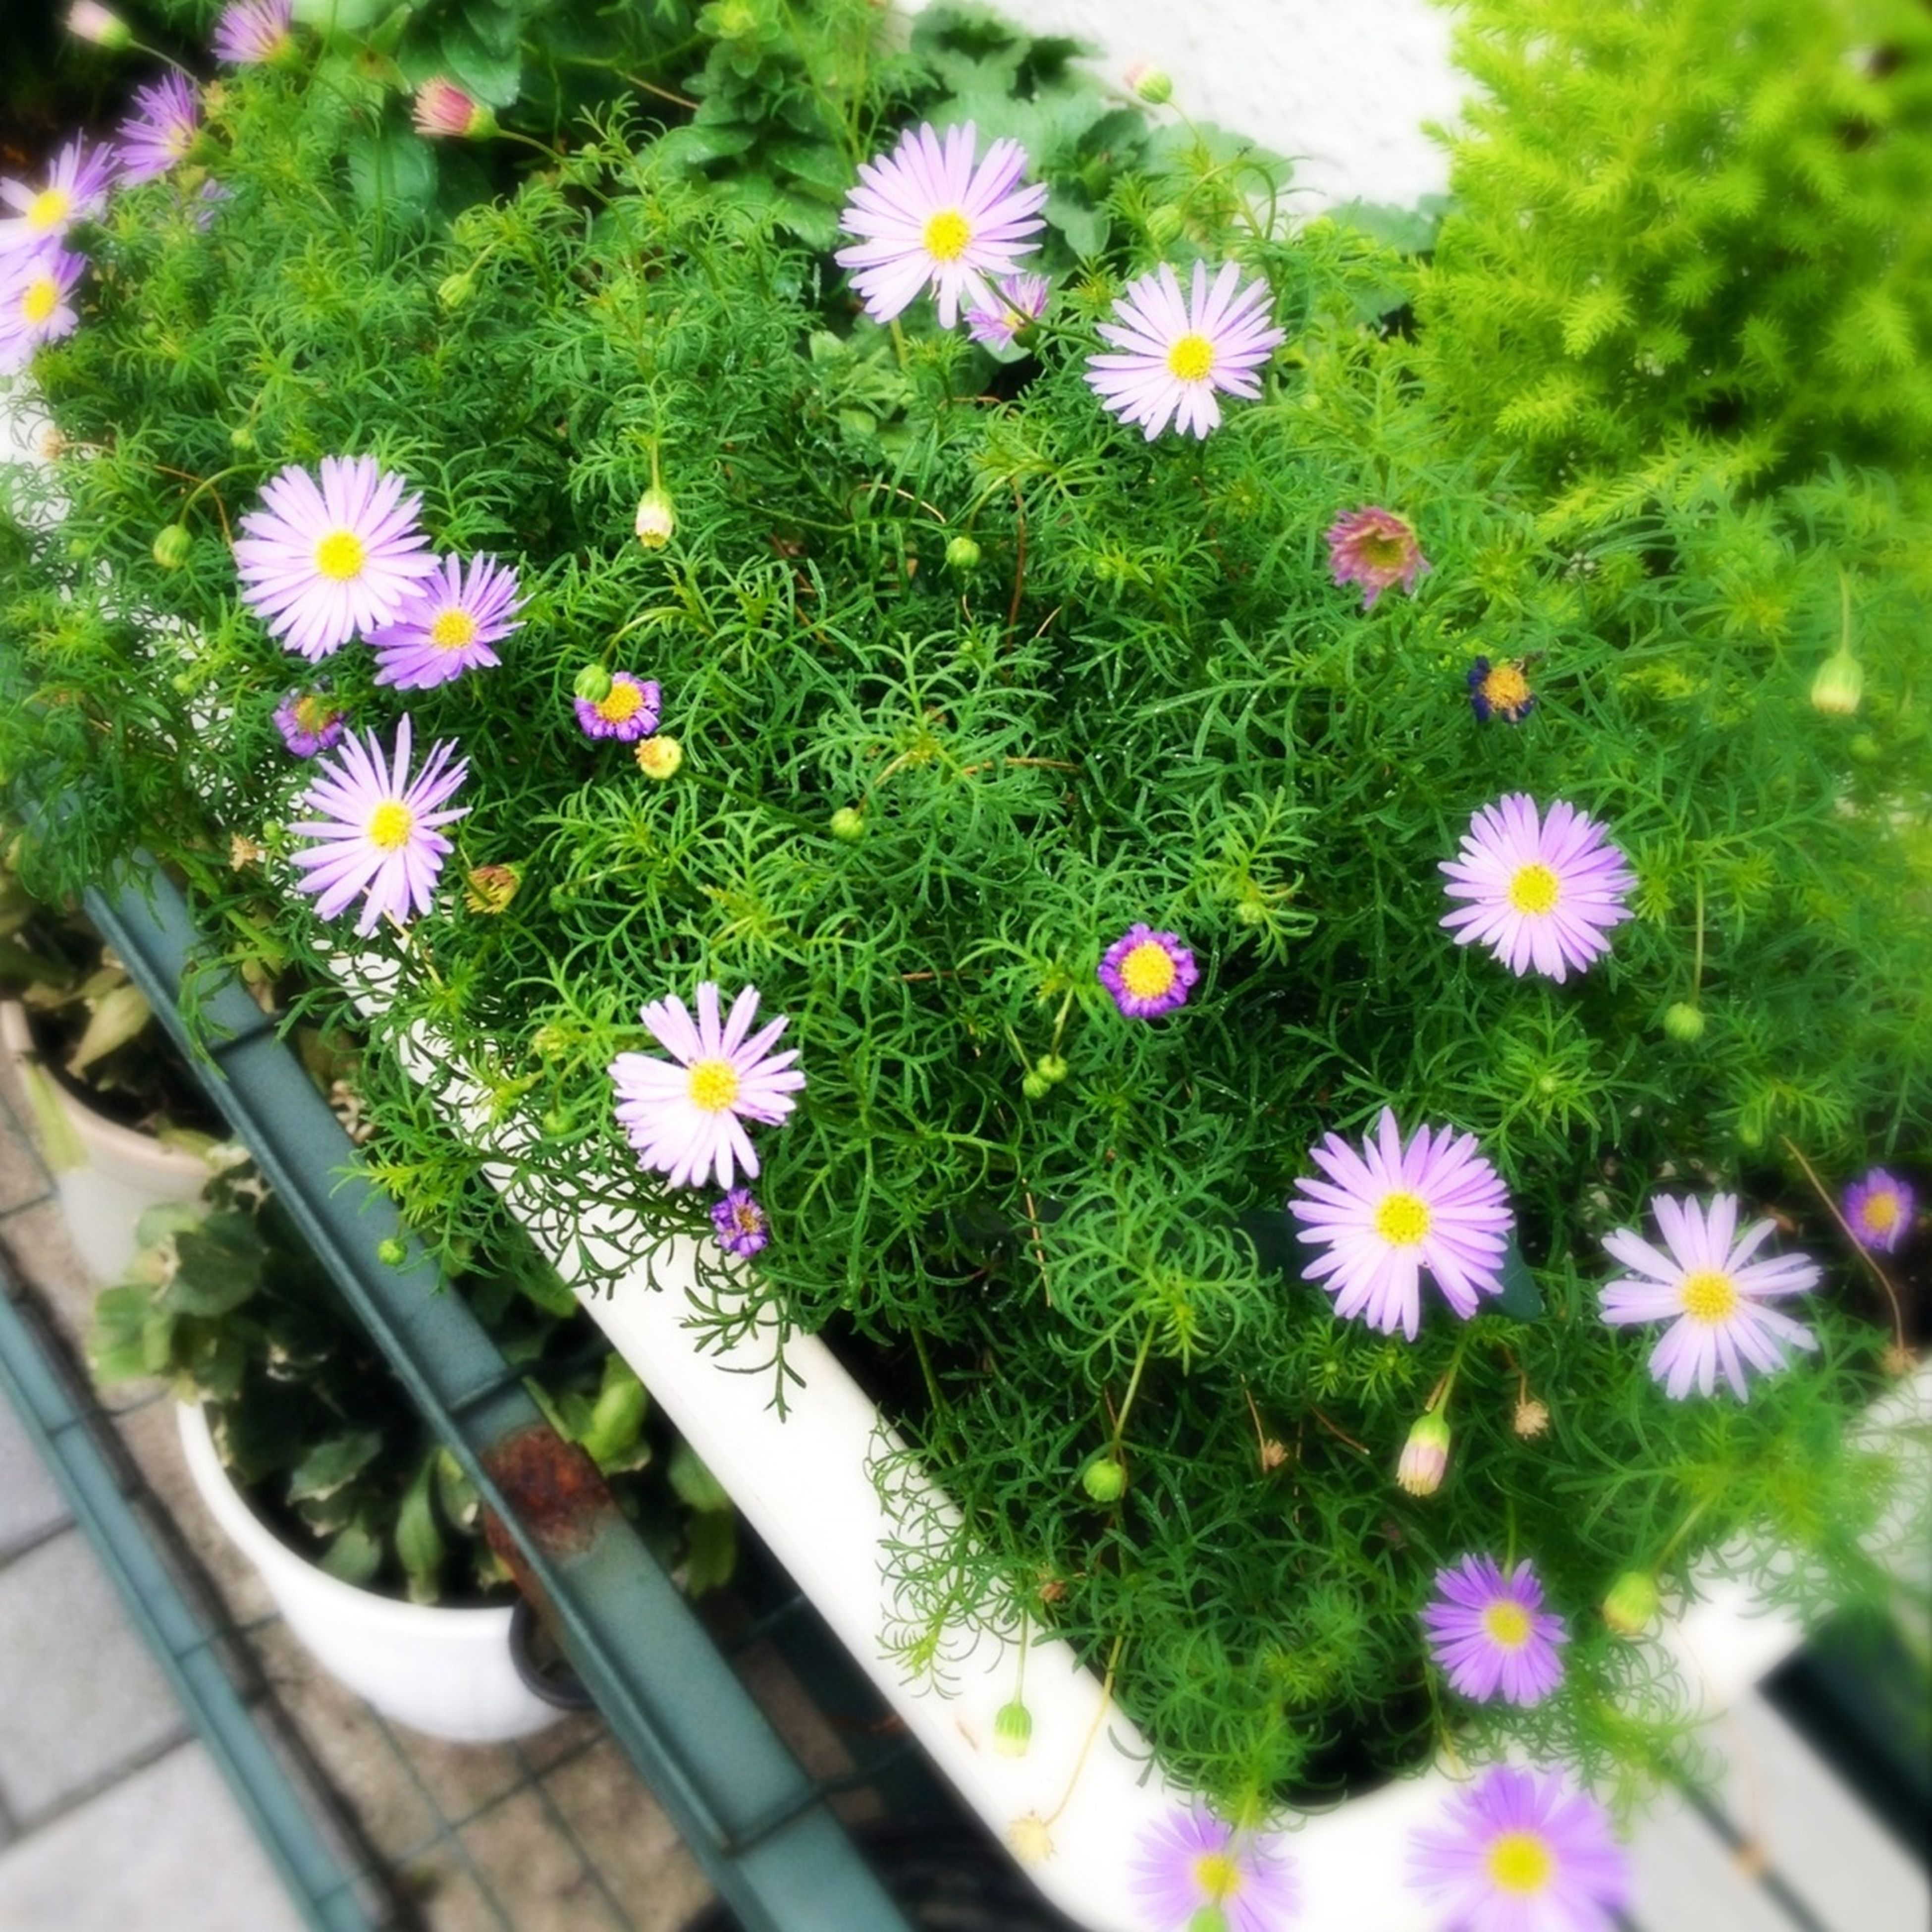 flower, freshness, growth, fragility, petal, plant, beauty in nature, flower head, blooming, nature, high angle view, in bloom, green color, leaf, pink color, daisy, botany, stem, day, blossom